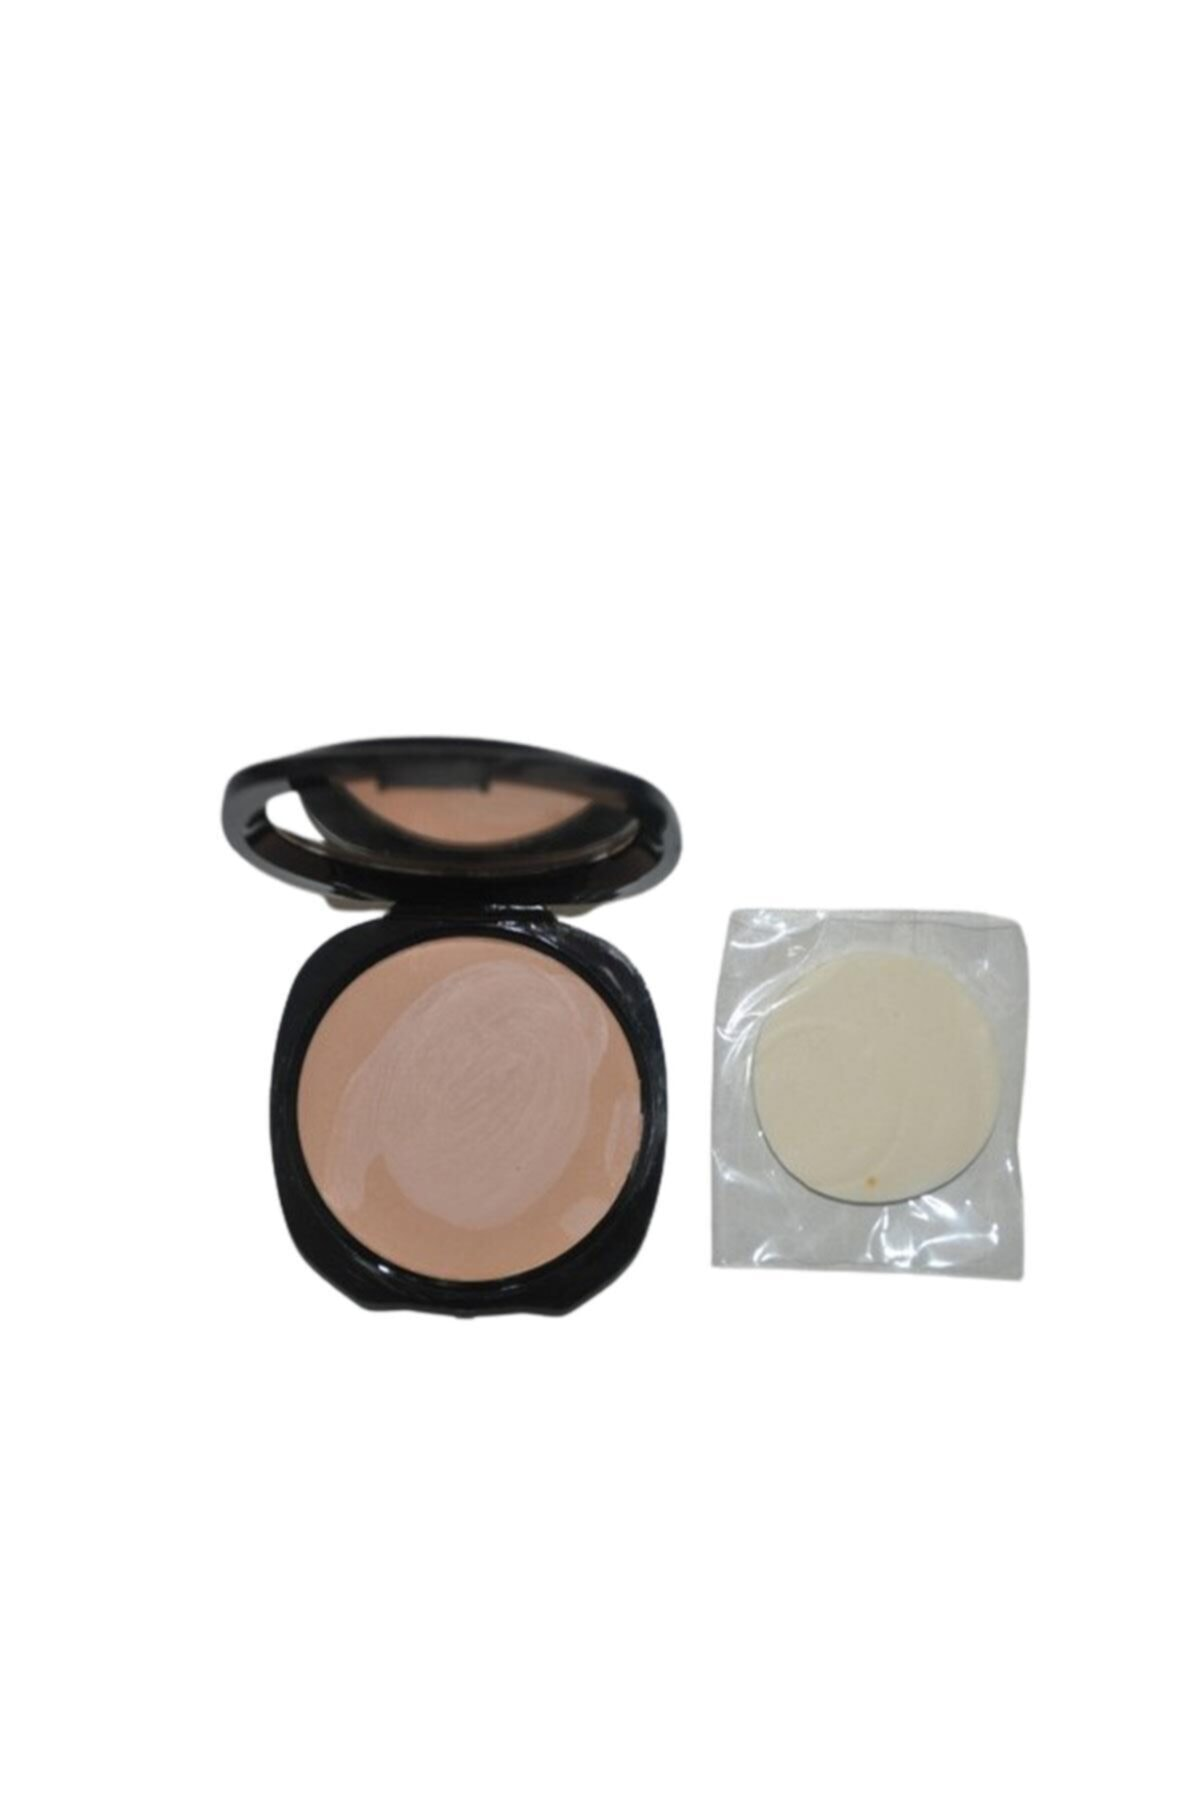 Catherine Arley Silky Touch Cream Compact 03 1